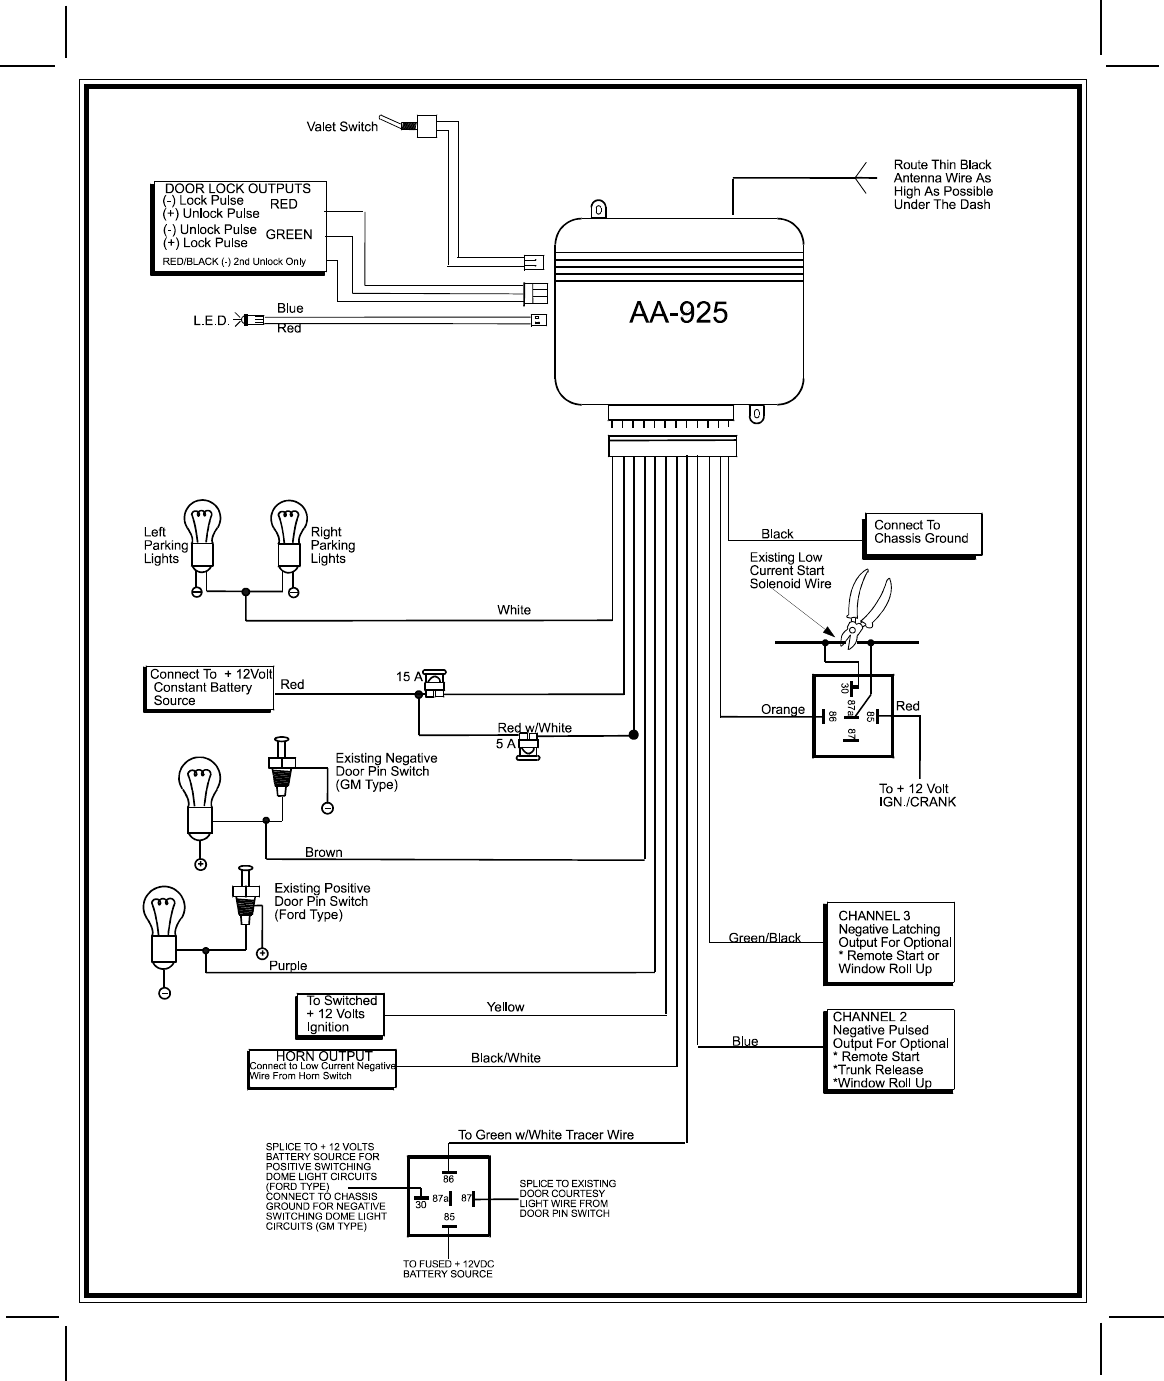 728e5939 5a52 46a4 ba14 2e72baef2843 bg8 audiovox keyless entry wiring diagrams wiring diagram simonand techservices audiovox car wiring at alyssarenee.co